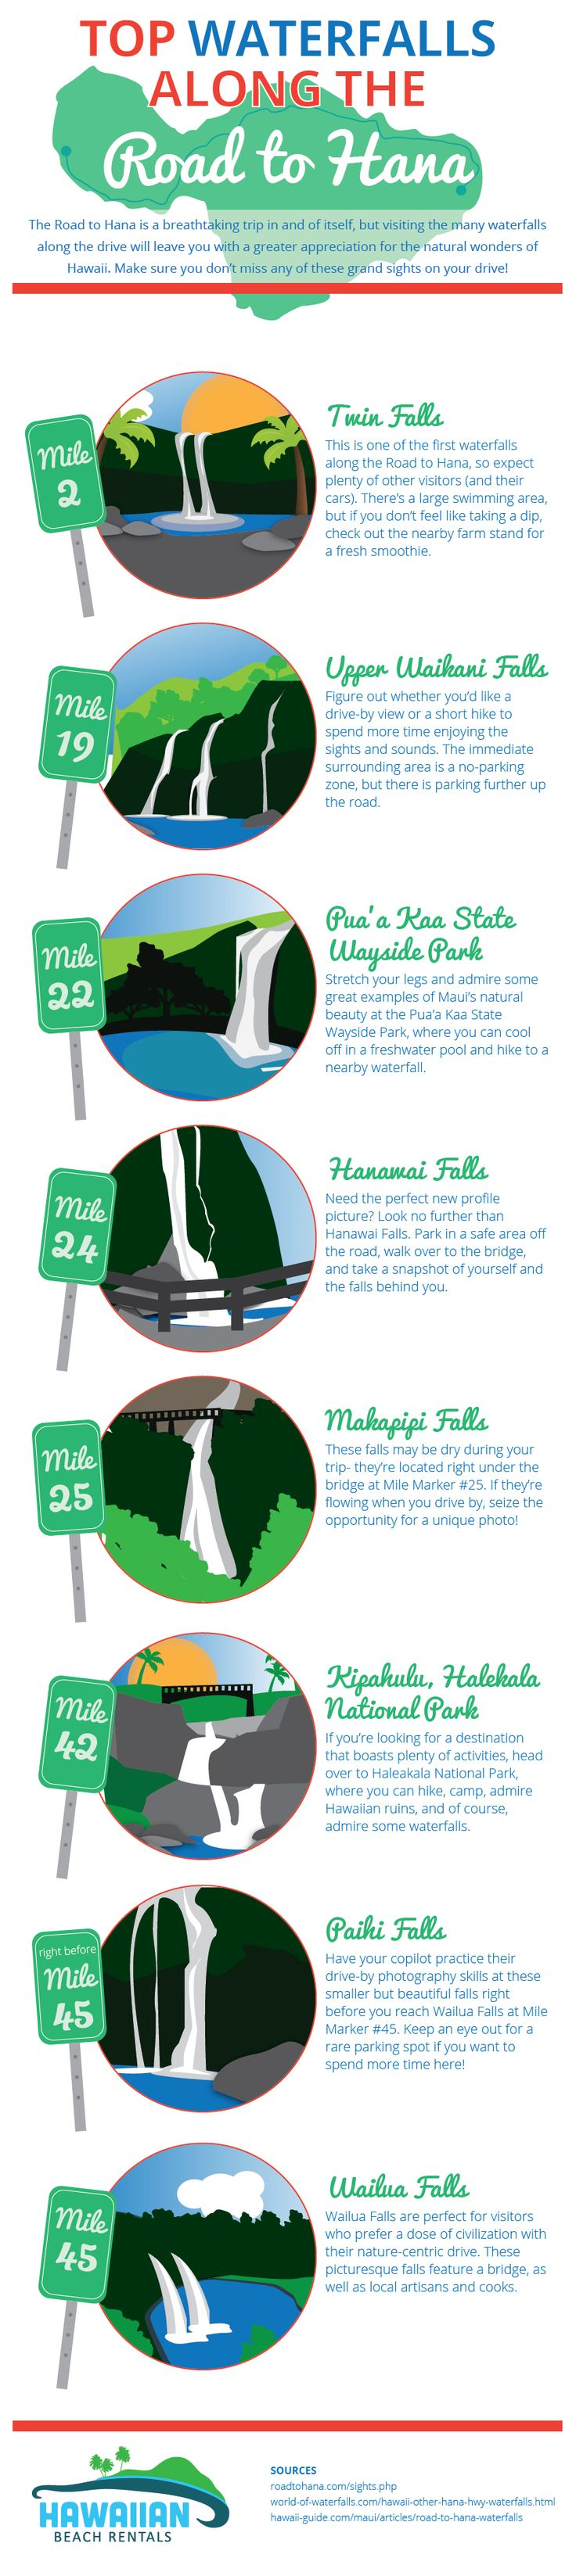 Use this guide on your next trip!